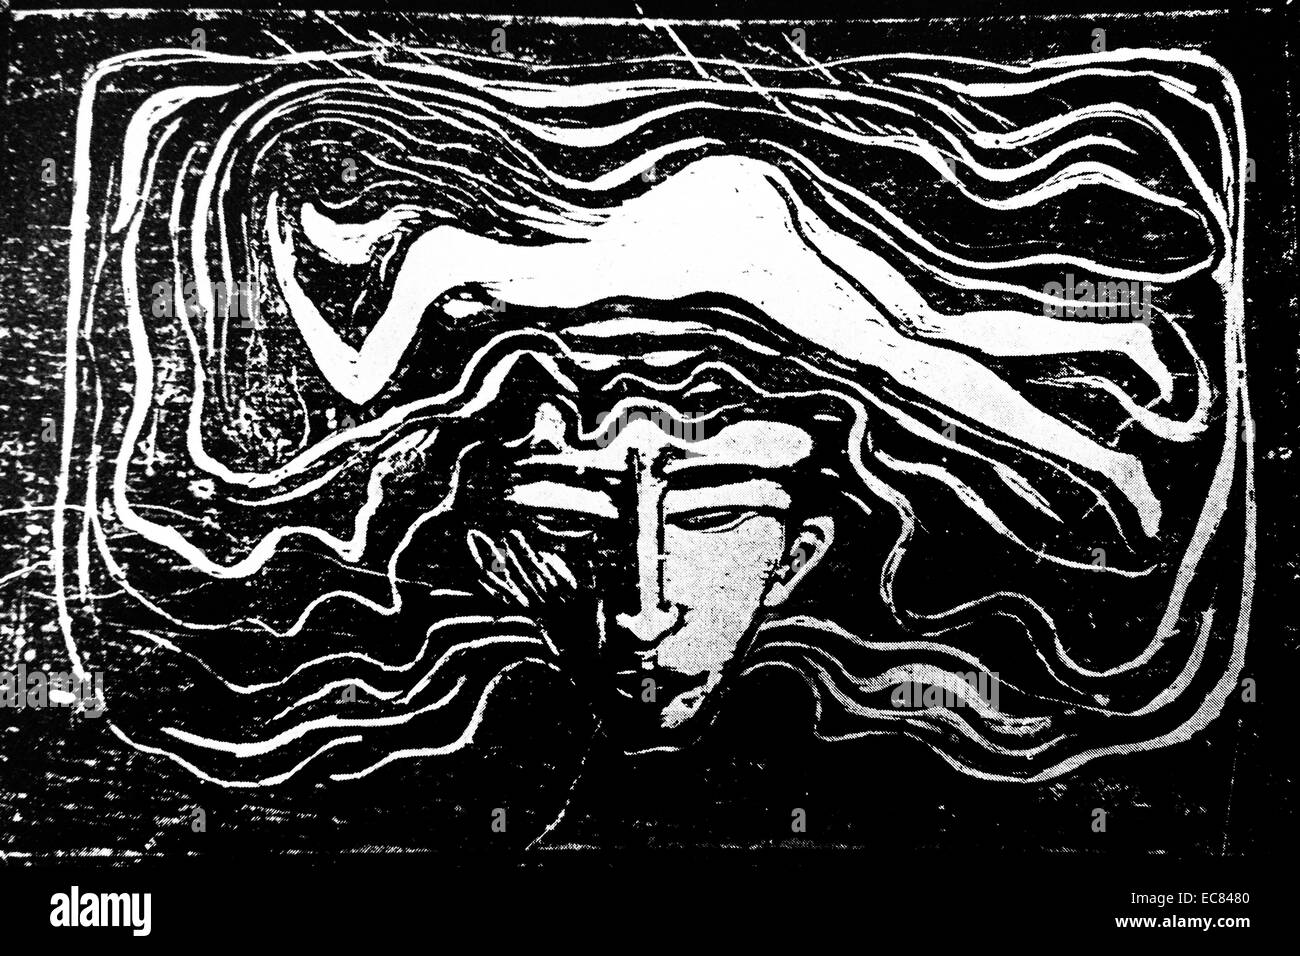 Work entitled The Man's Brain by Norwegian artist Edvard Munch (1863-1944). This work was produced in 1897. - Stock Image